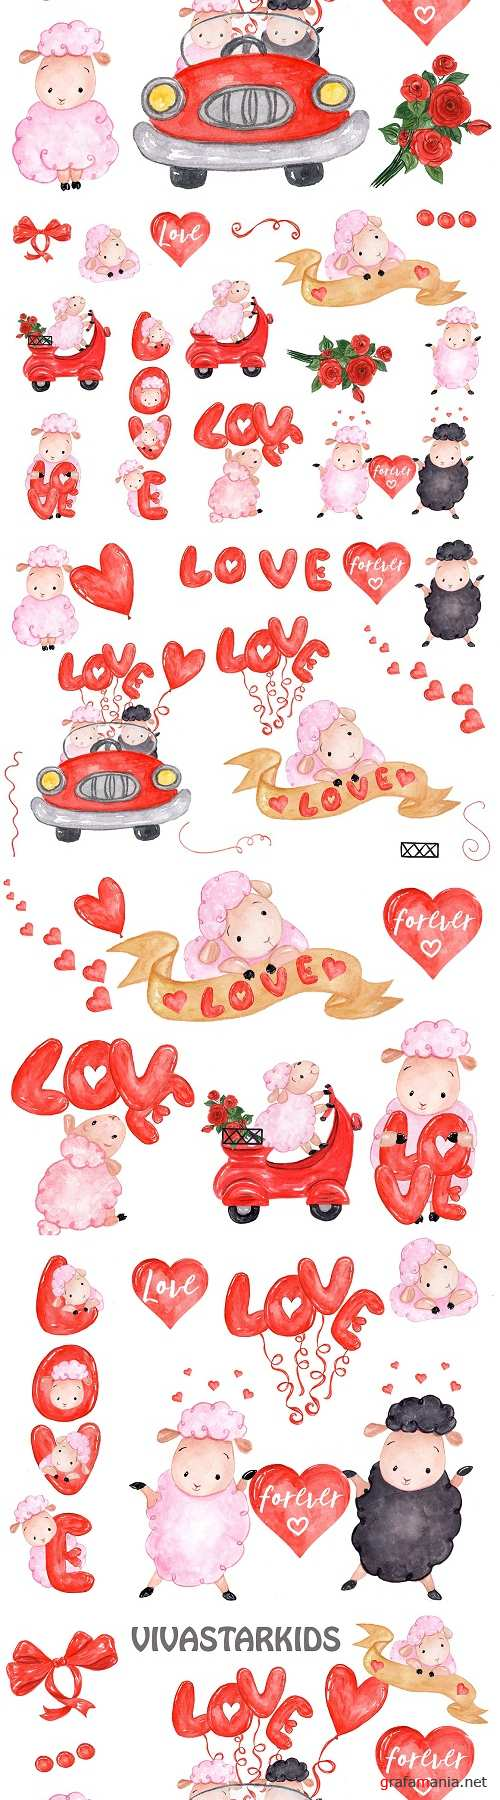 Love clipart Cute Sheeps clipart - 2183585